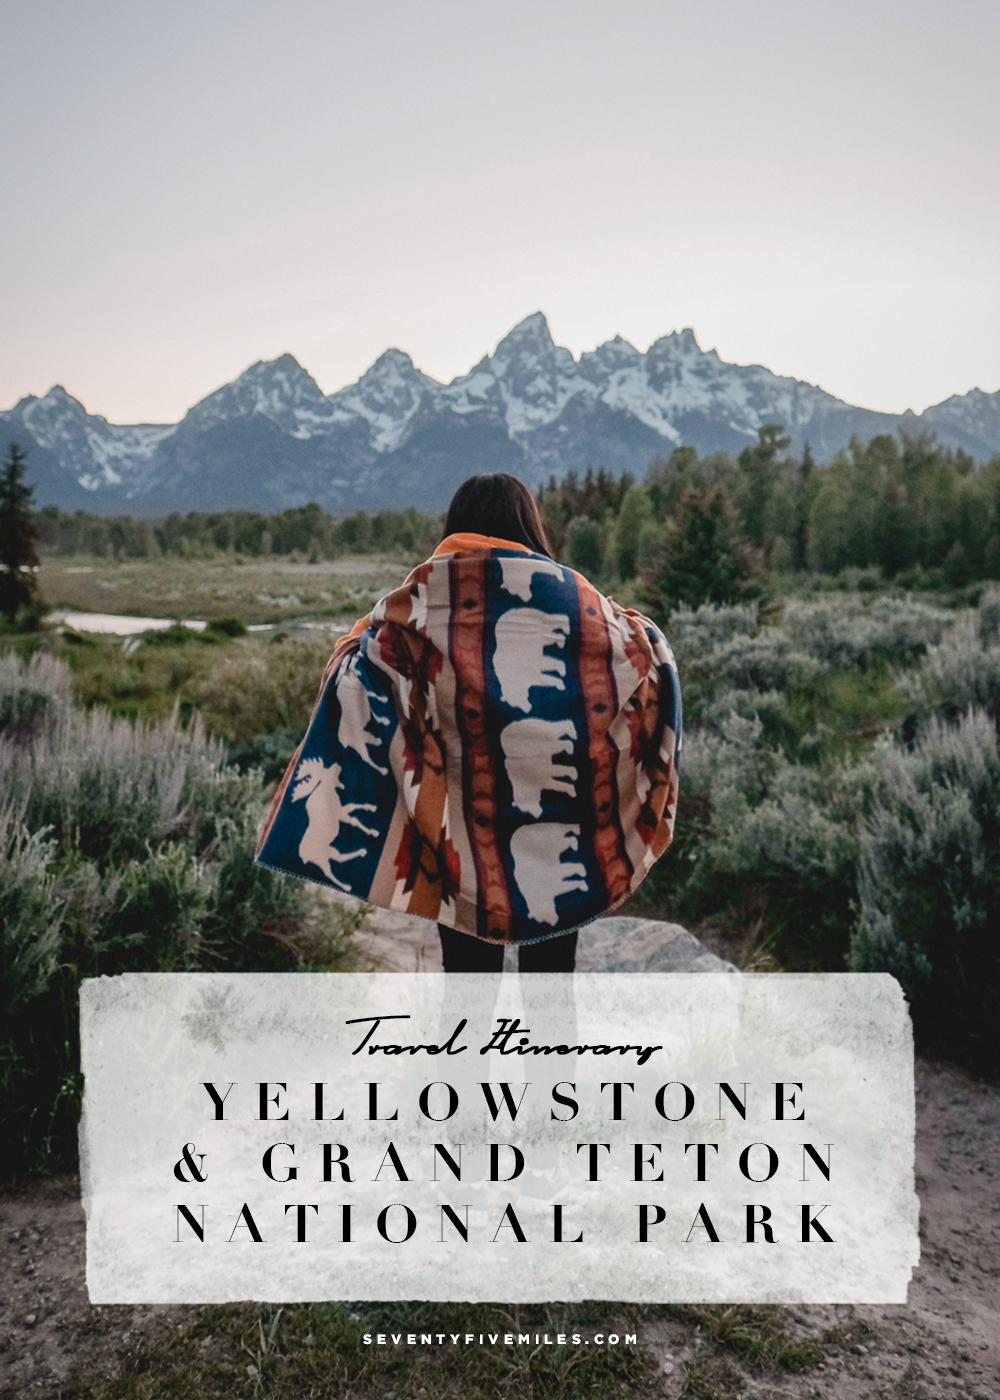 6-day Travel Itinerary to Yellowstone and Grand Teton